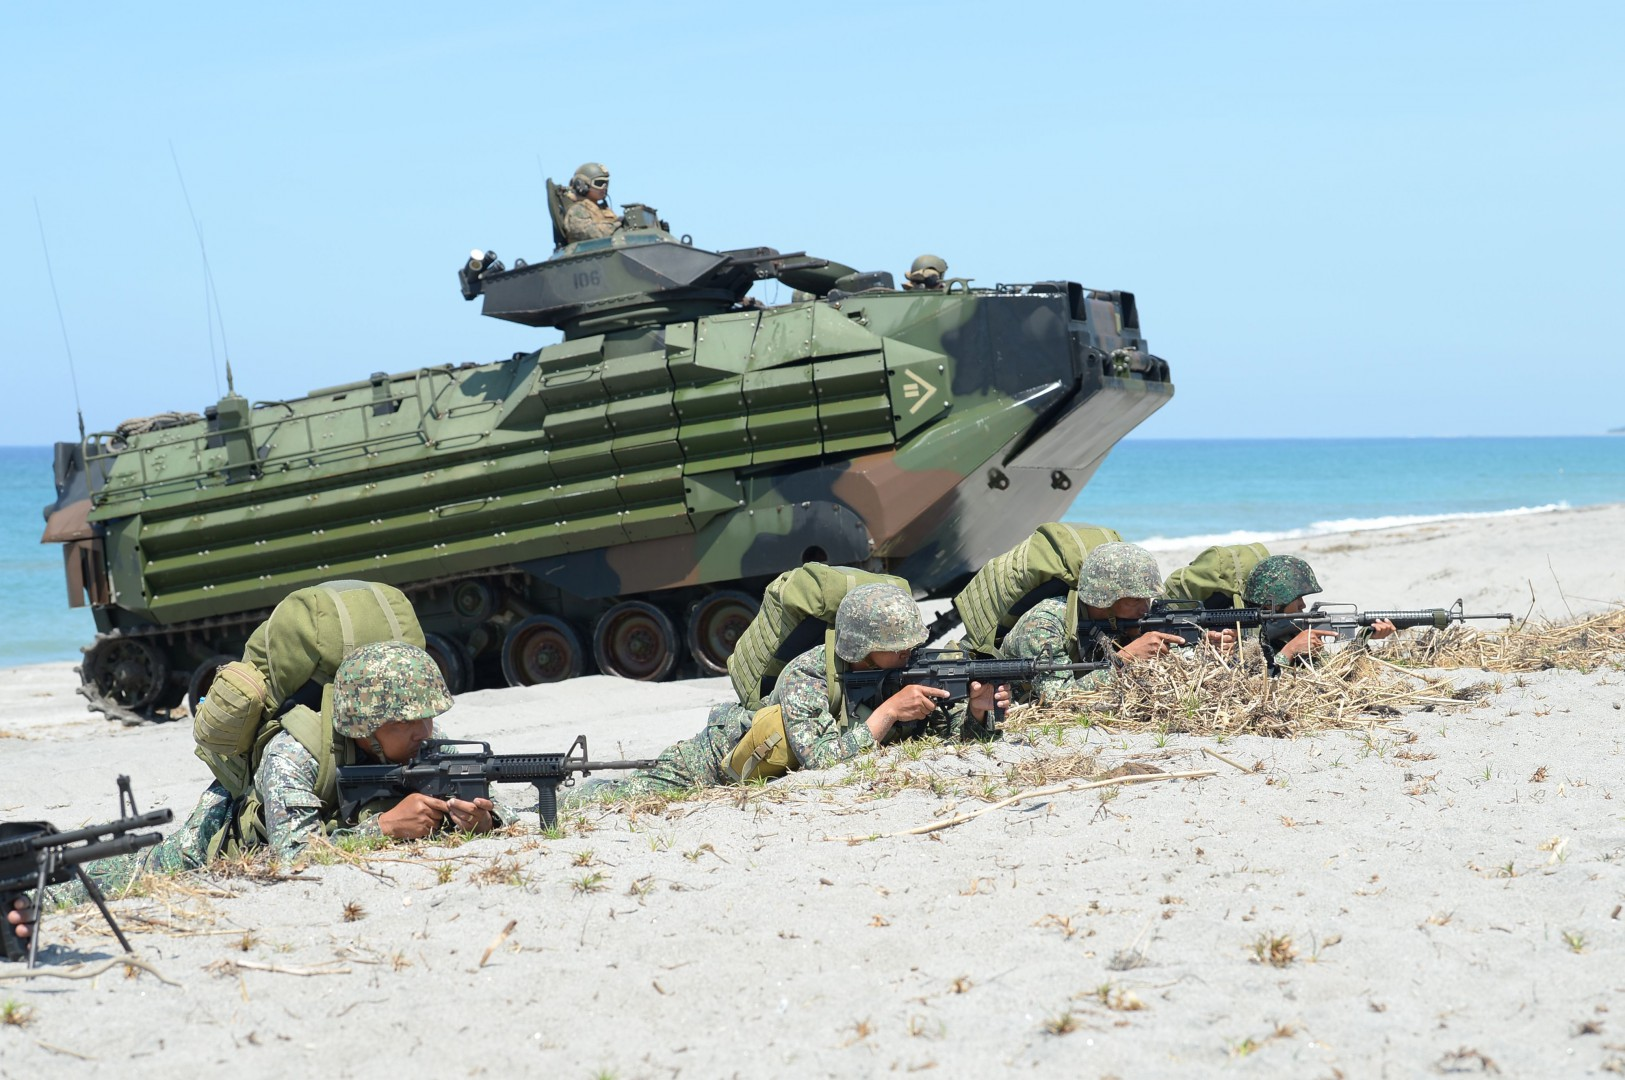 Philippine marines take position next to US marines Amphibious Assault Vehicles (AAV) during an amphibious landing exercise at the beach of the Philippine navy training center facing the south China sea in San Antonio town, Zambales province, north of Manila on October 6, 2018. - Japanese troops stormed a South China Sea beach in the Philippines on October 6 in joint military exercises with US and Filipino troops that officials said marked the first time Tokyo's armoured vehicles rolled on foreign soil after World War II. (Photo by TED ALJIBE / AFP)